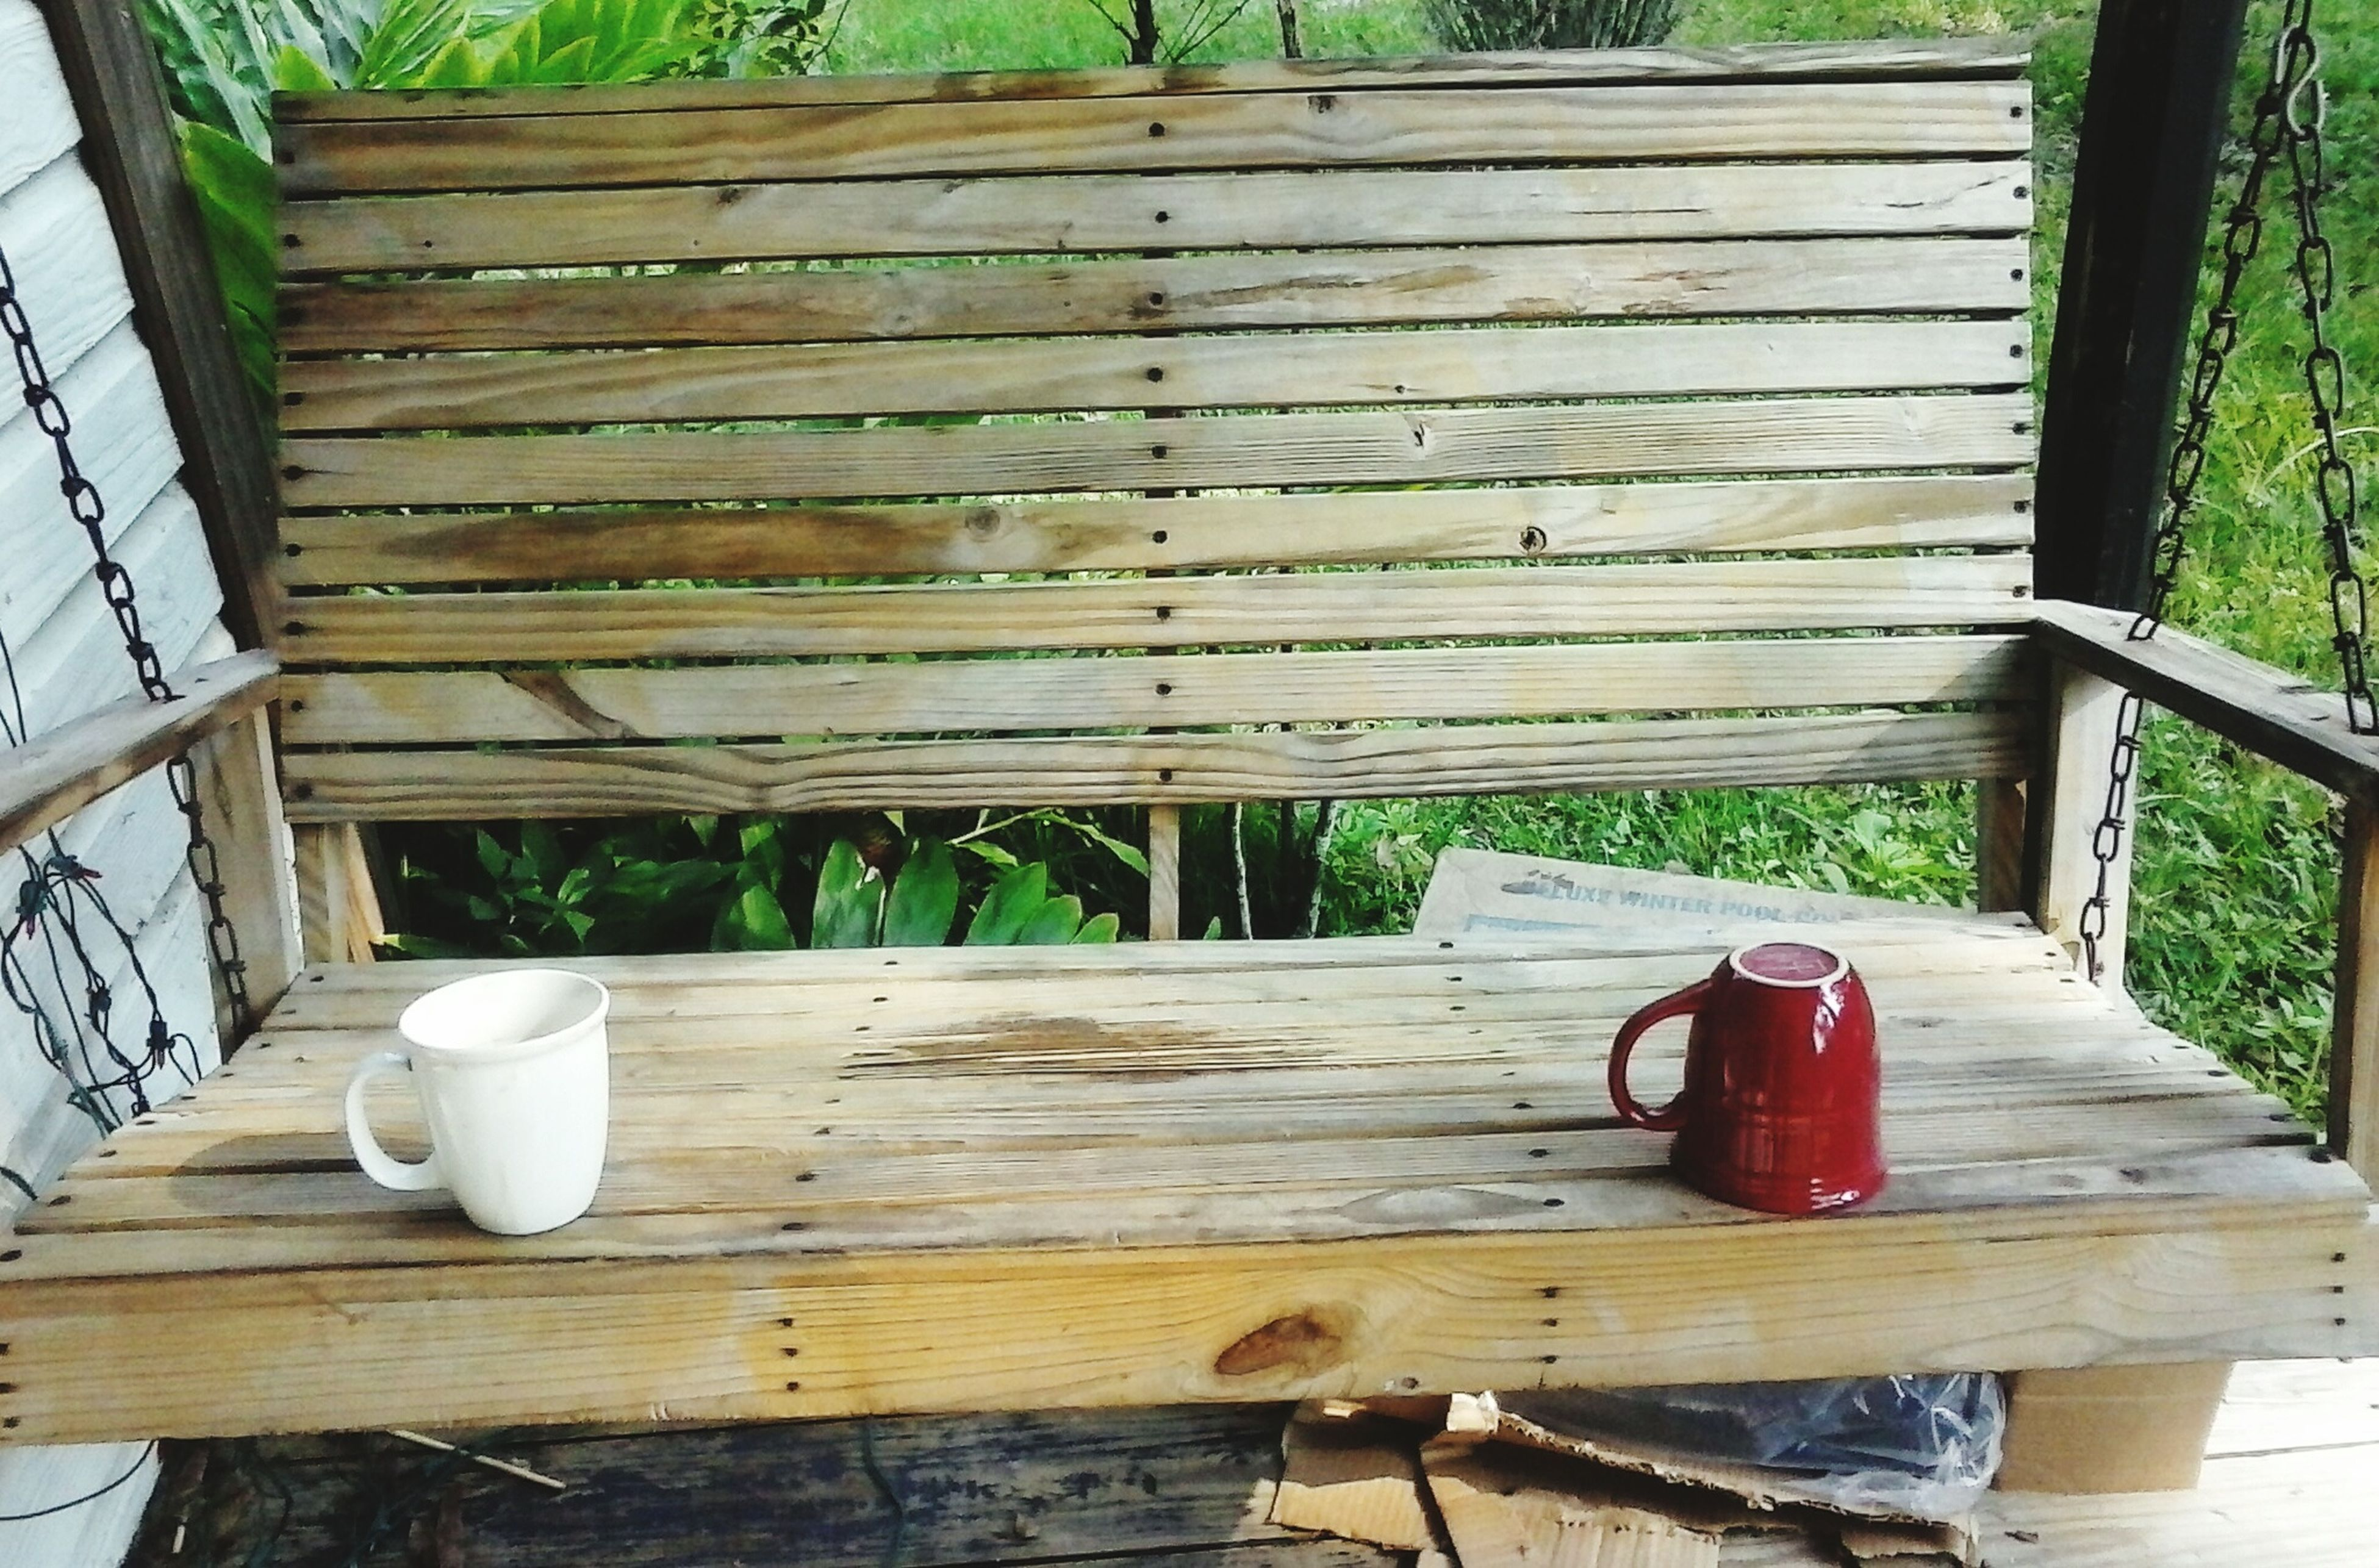 wood - material, wooden, wood, table, plank, bench, empty, chair, high angle view, absence, day, boardwalk, abandoned, no people, outdoors, grass, red, wood paneling, seat, old